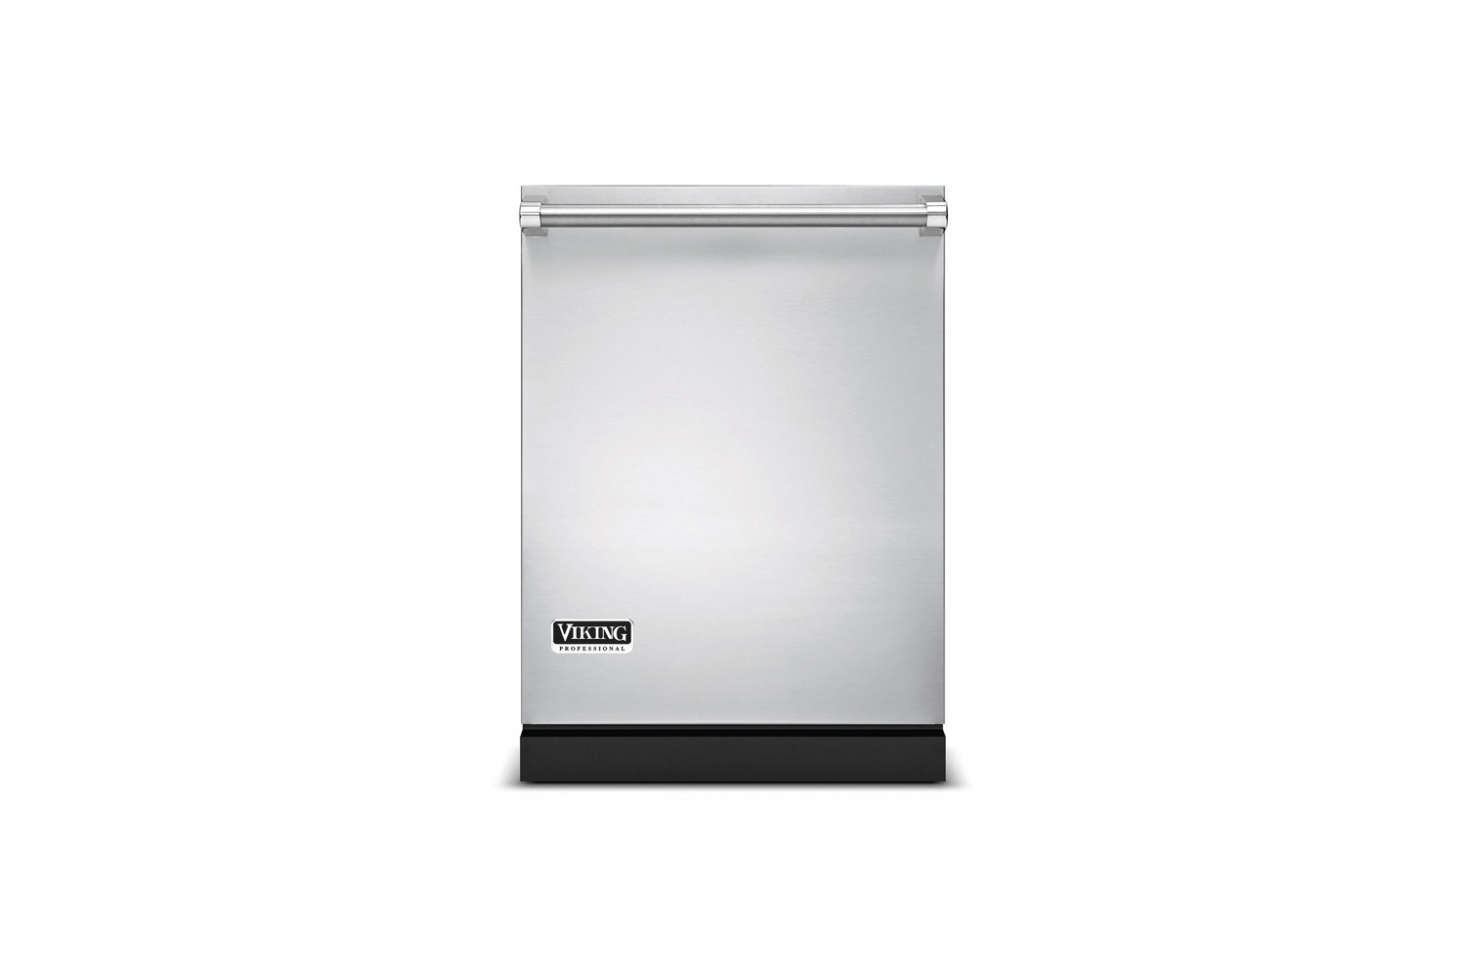 The Viking Professional Series Fully Integrated Dishwasher (VDW30